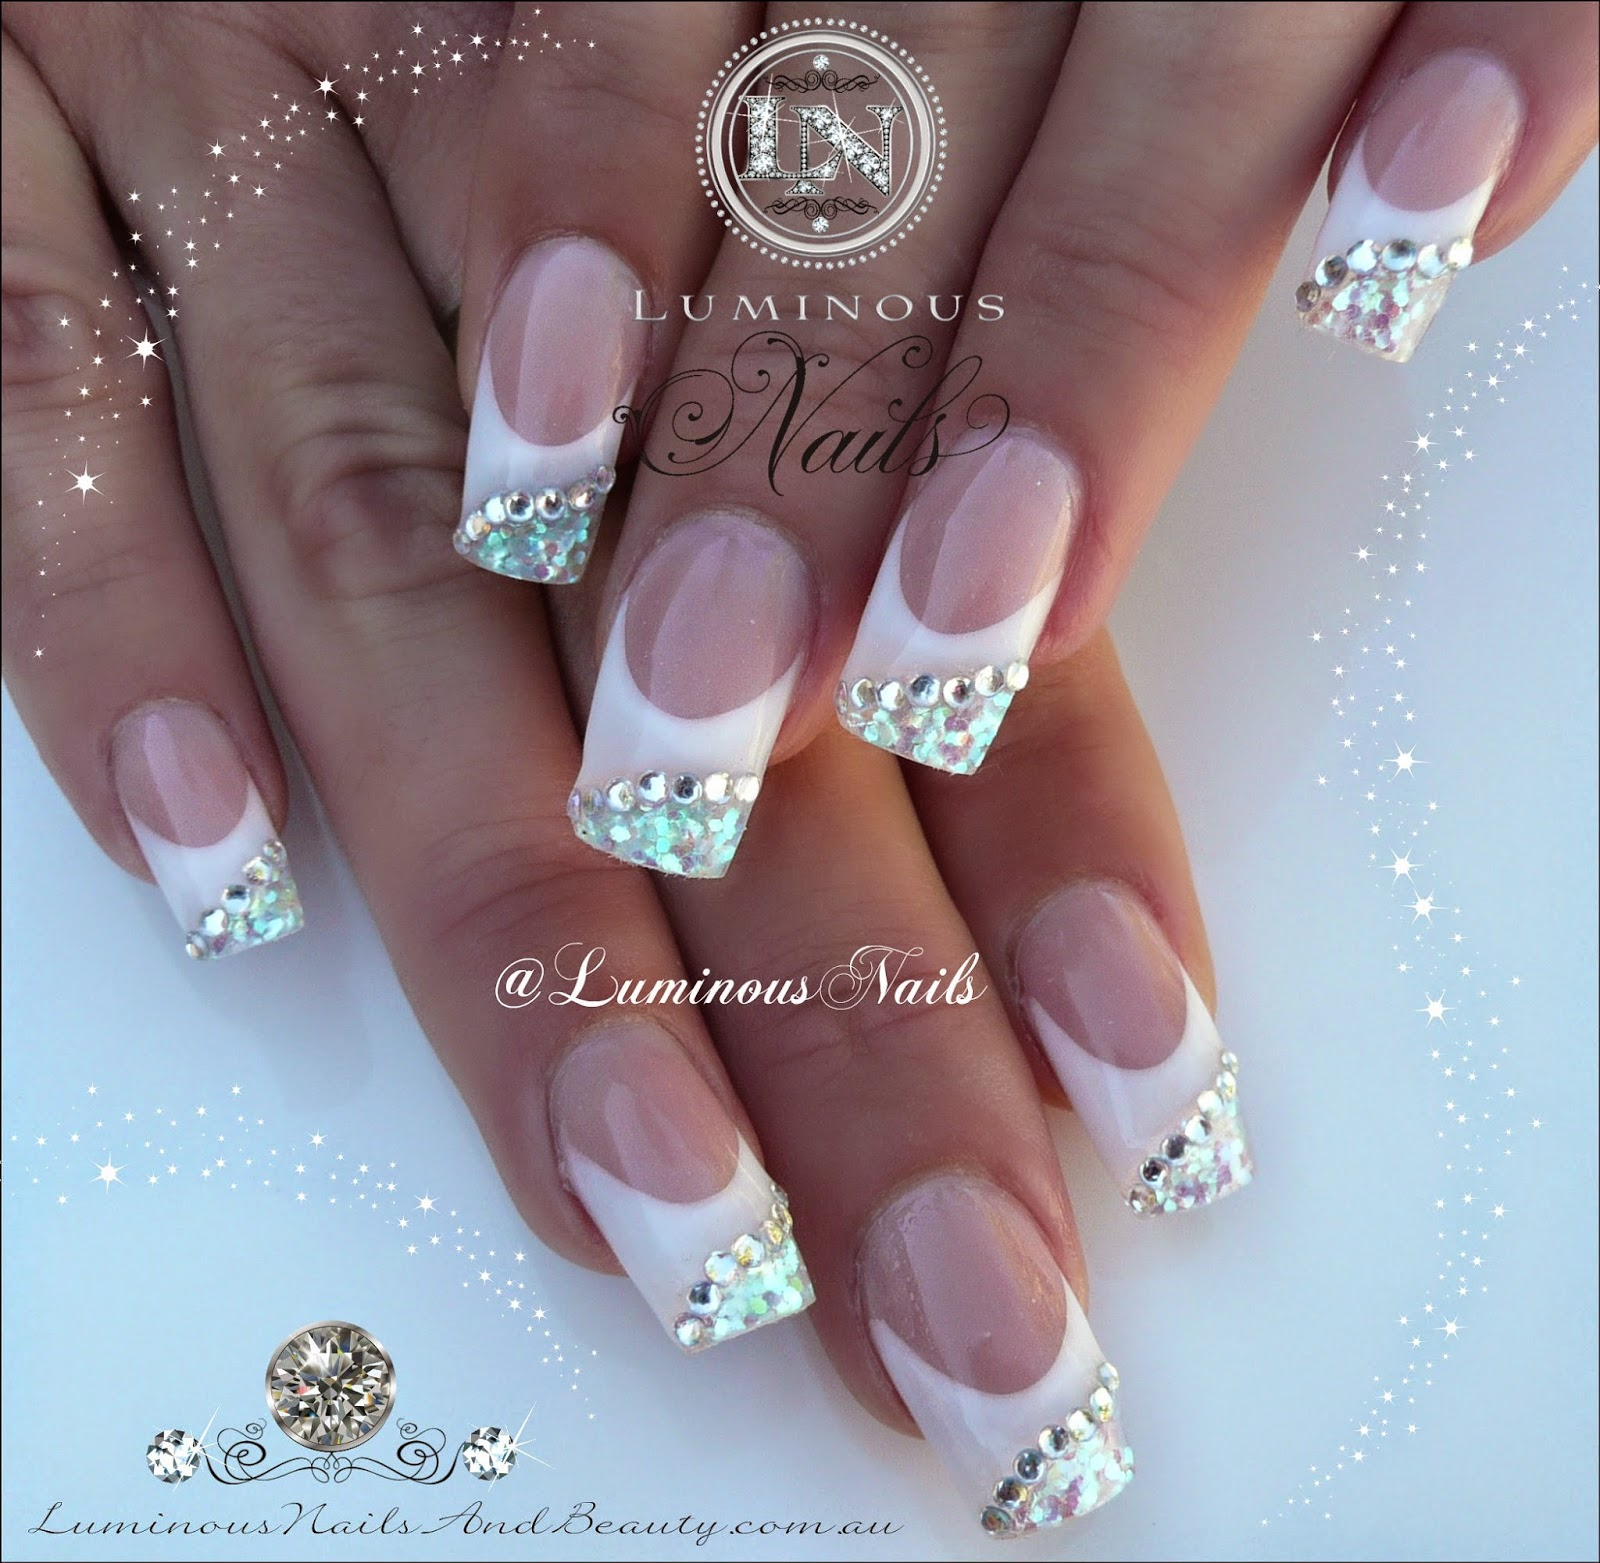 Nail designs with rhinestones and glitter nail art gallery rhinestones nail art photos nail designs with rhinestones and glitter prinsesfo Images